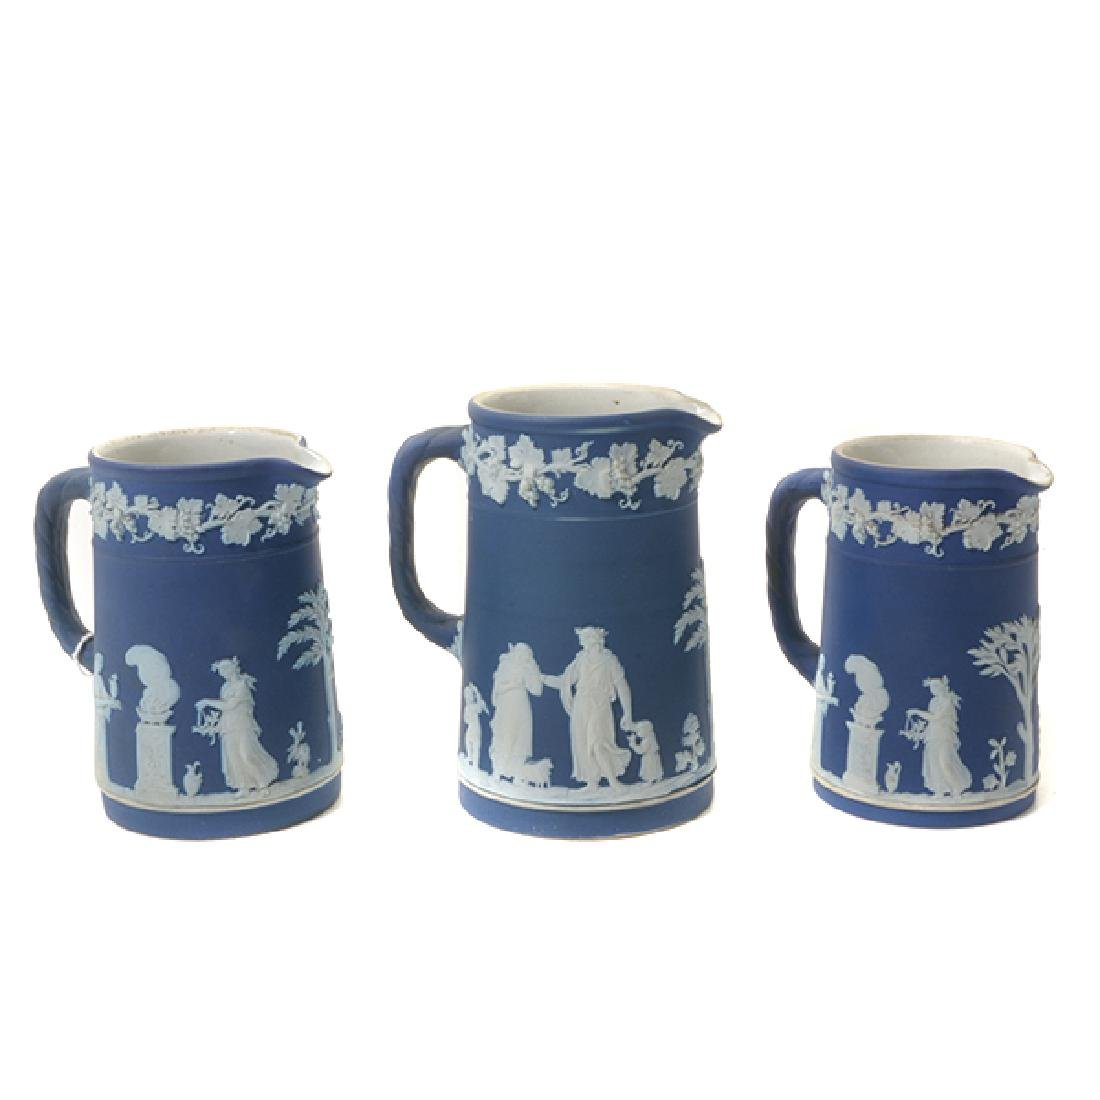 Collection of Wedgwood Jasperware Table Articles - 3